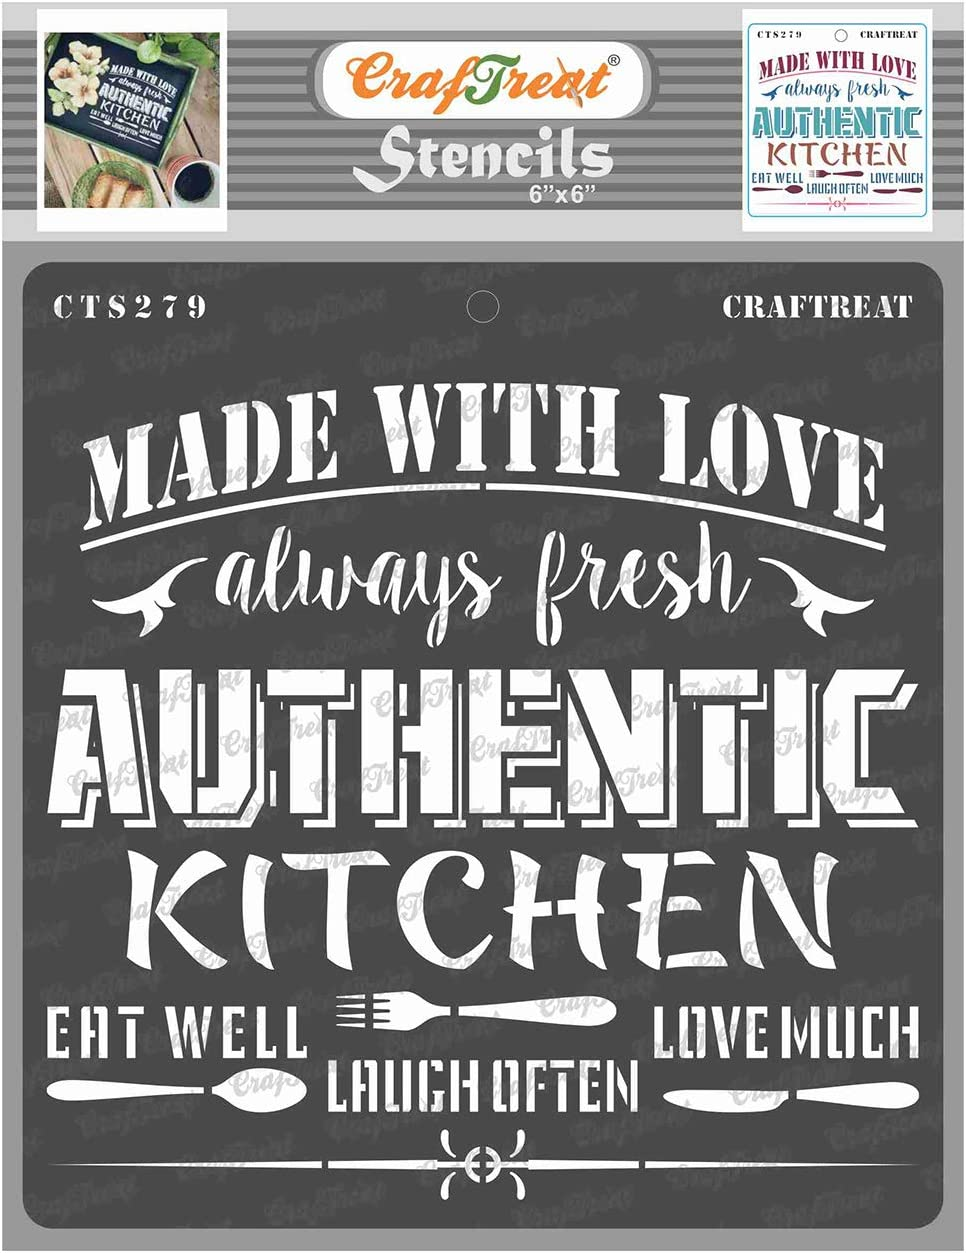 CrafTreat Kitchen Stencils for Painting on Wood, Canvas, Paper, Fabric, Floor, Wall and Tile - Authentic Kitchen - 6x6 Inches - Reusable DIY Art and Craft Stencils - Stencils Kitchen Decor